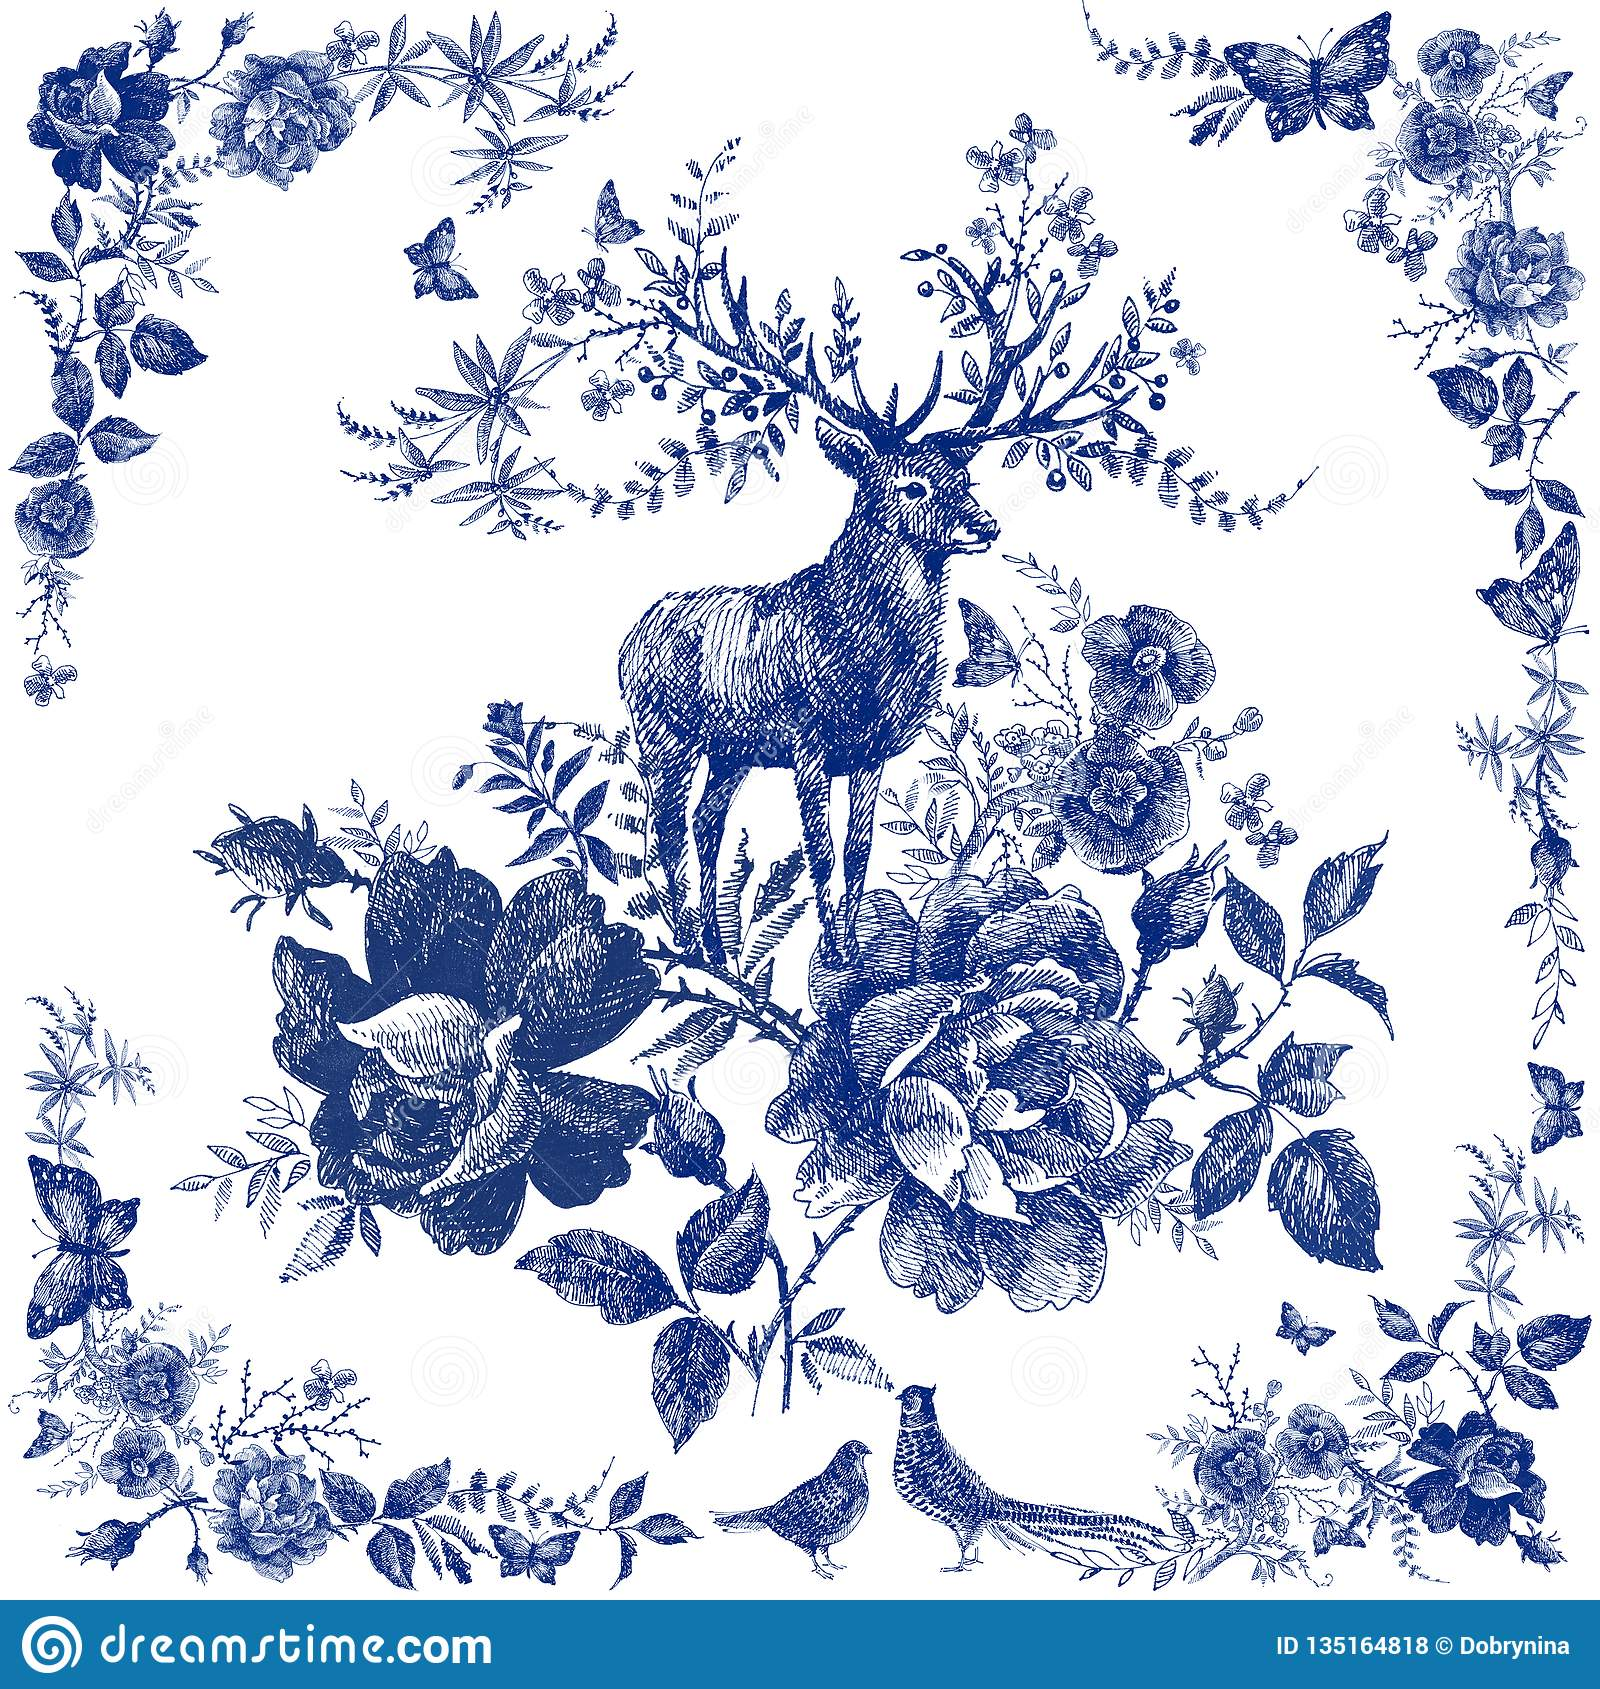 Silk scarf with floral and wild animal. Deer illustration. Vintage design shawl with roses.